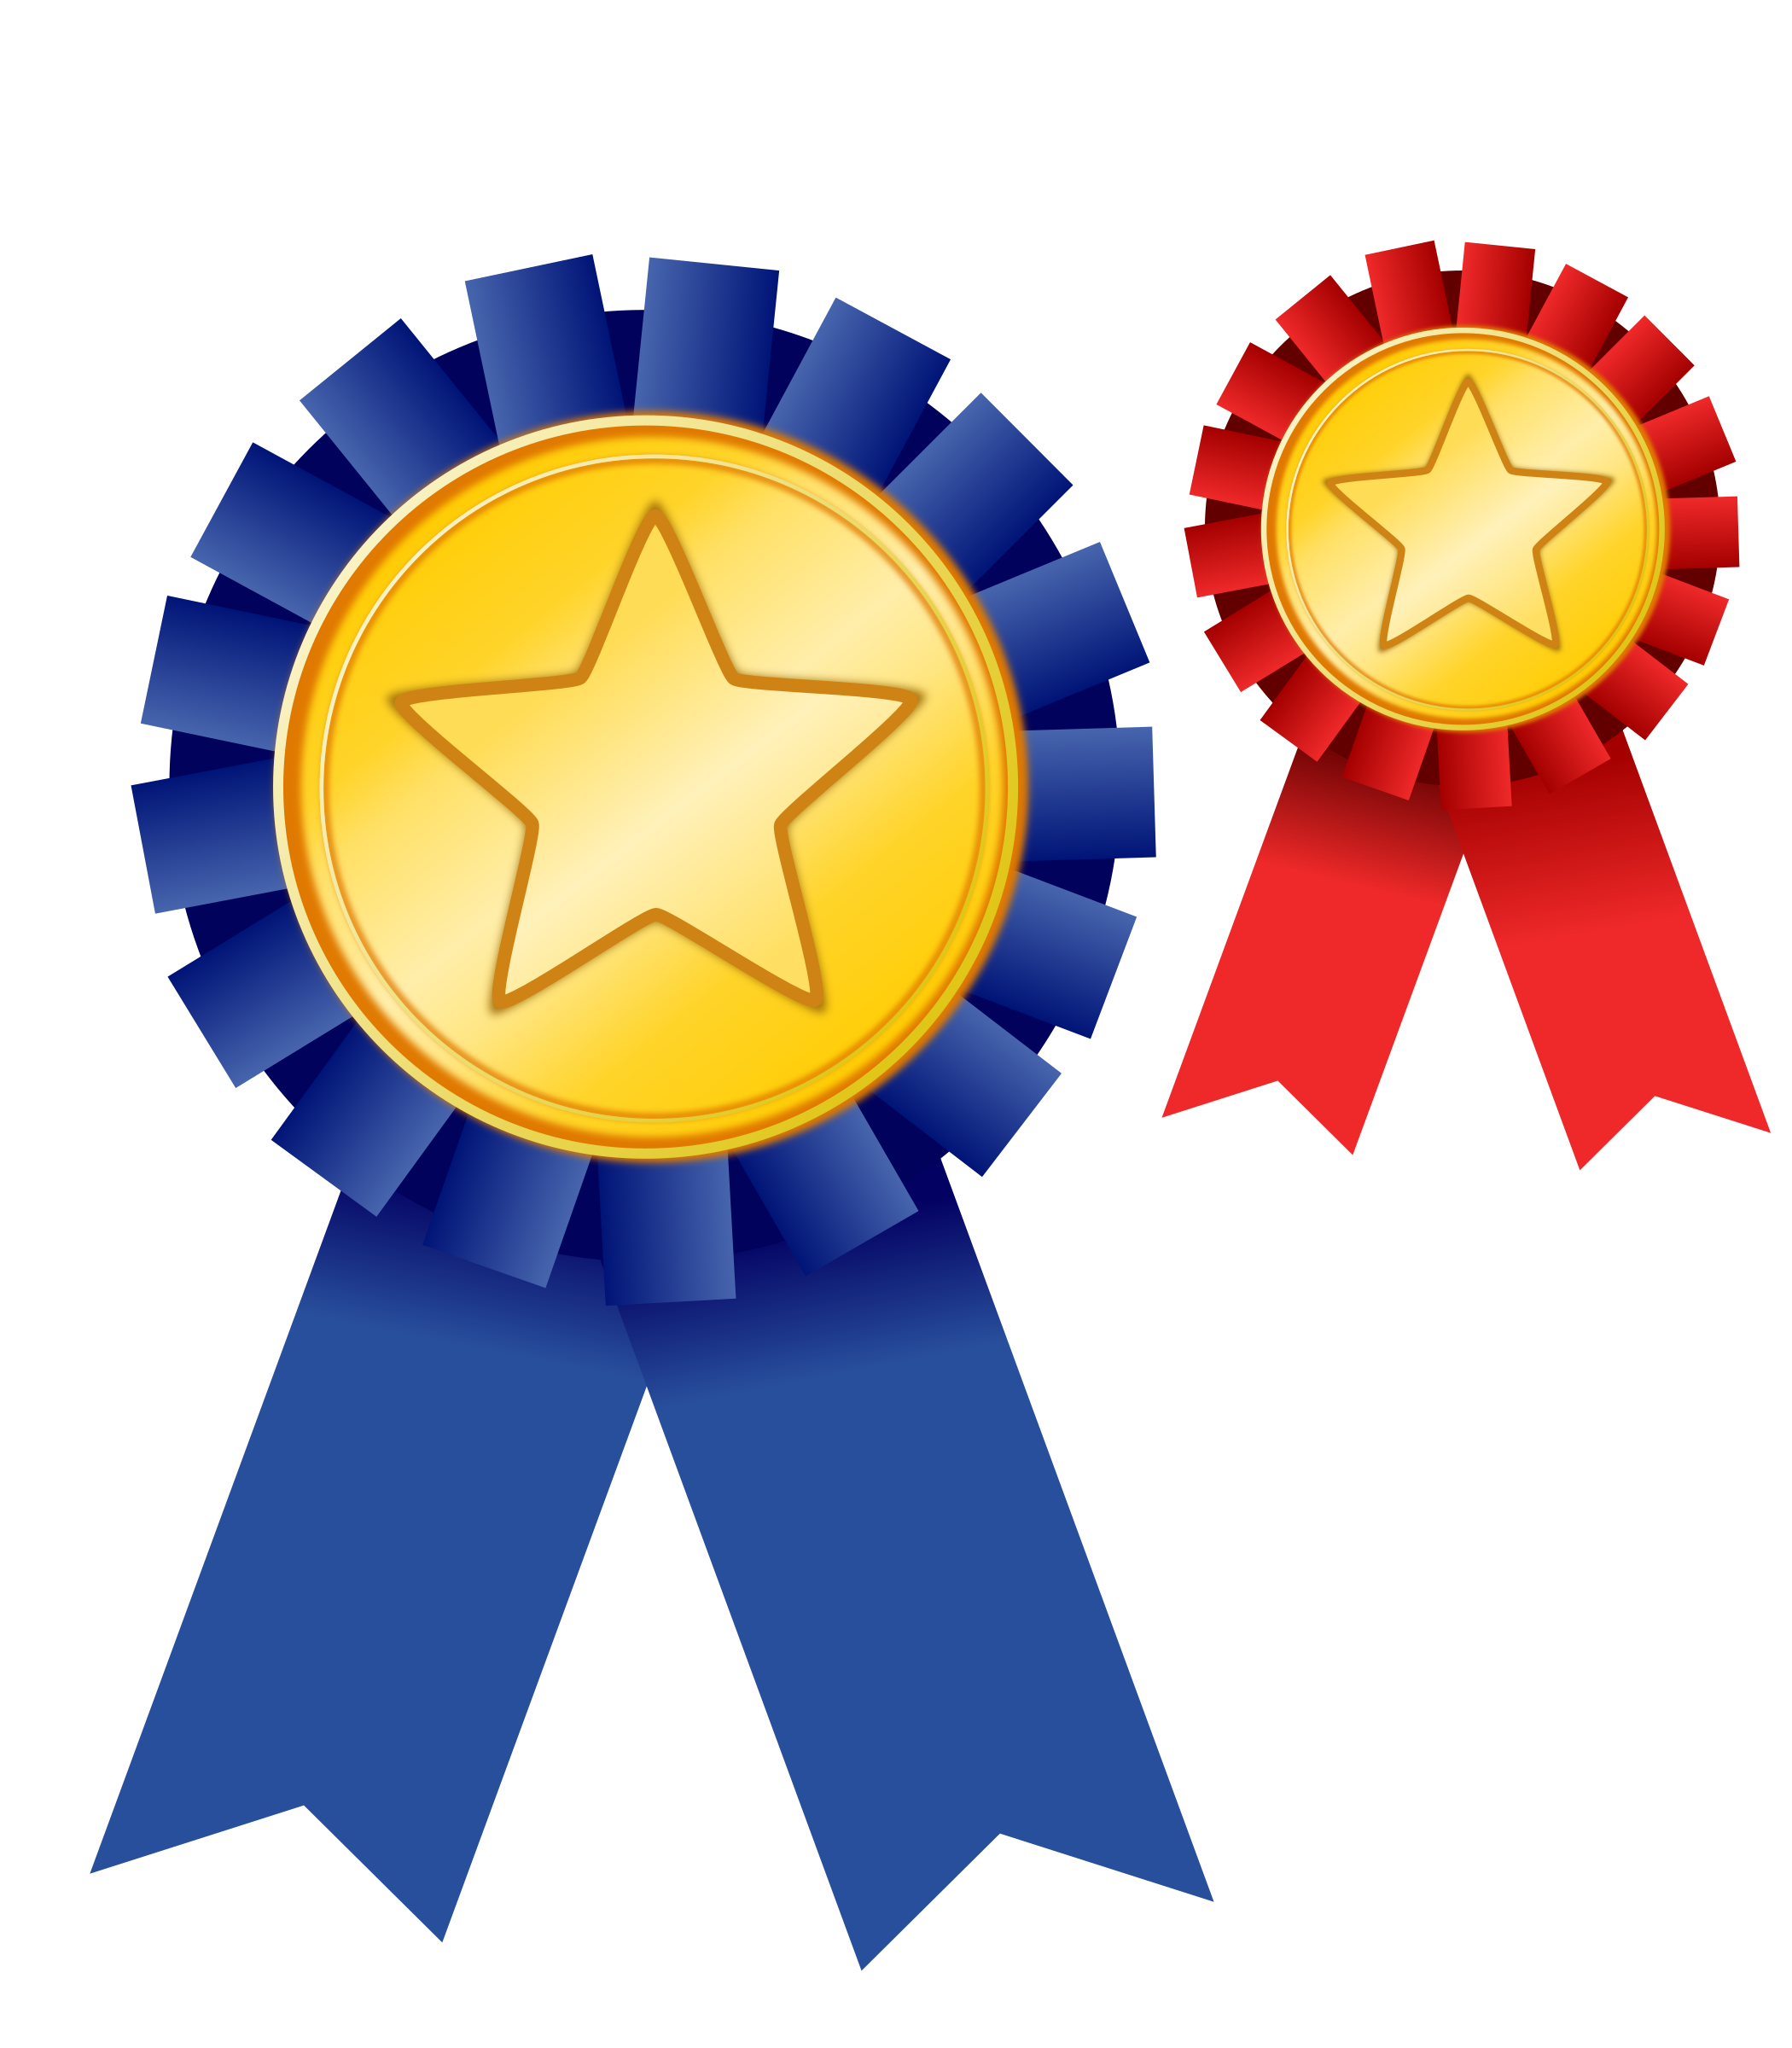 false claims whistleblower award of recognition